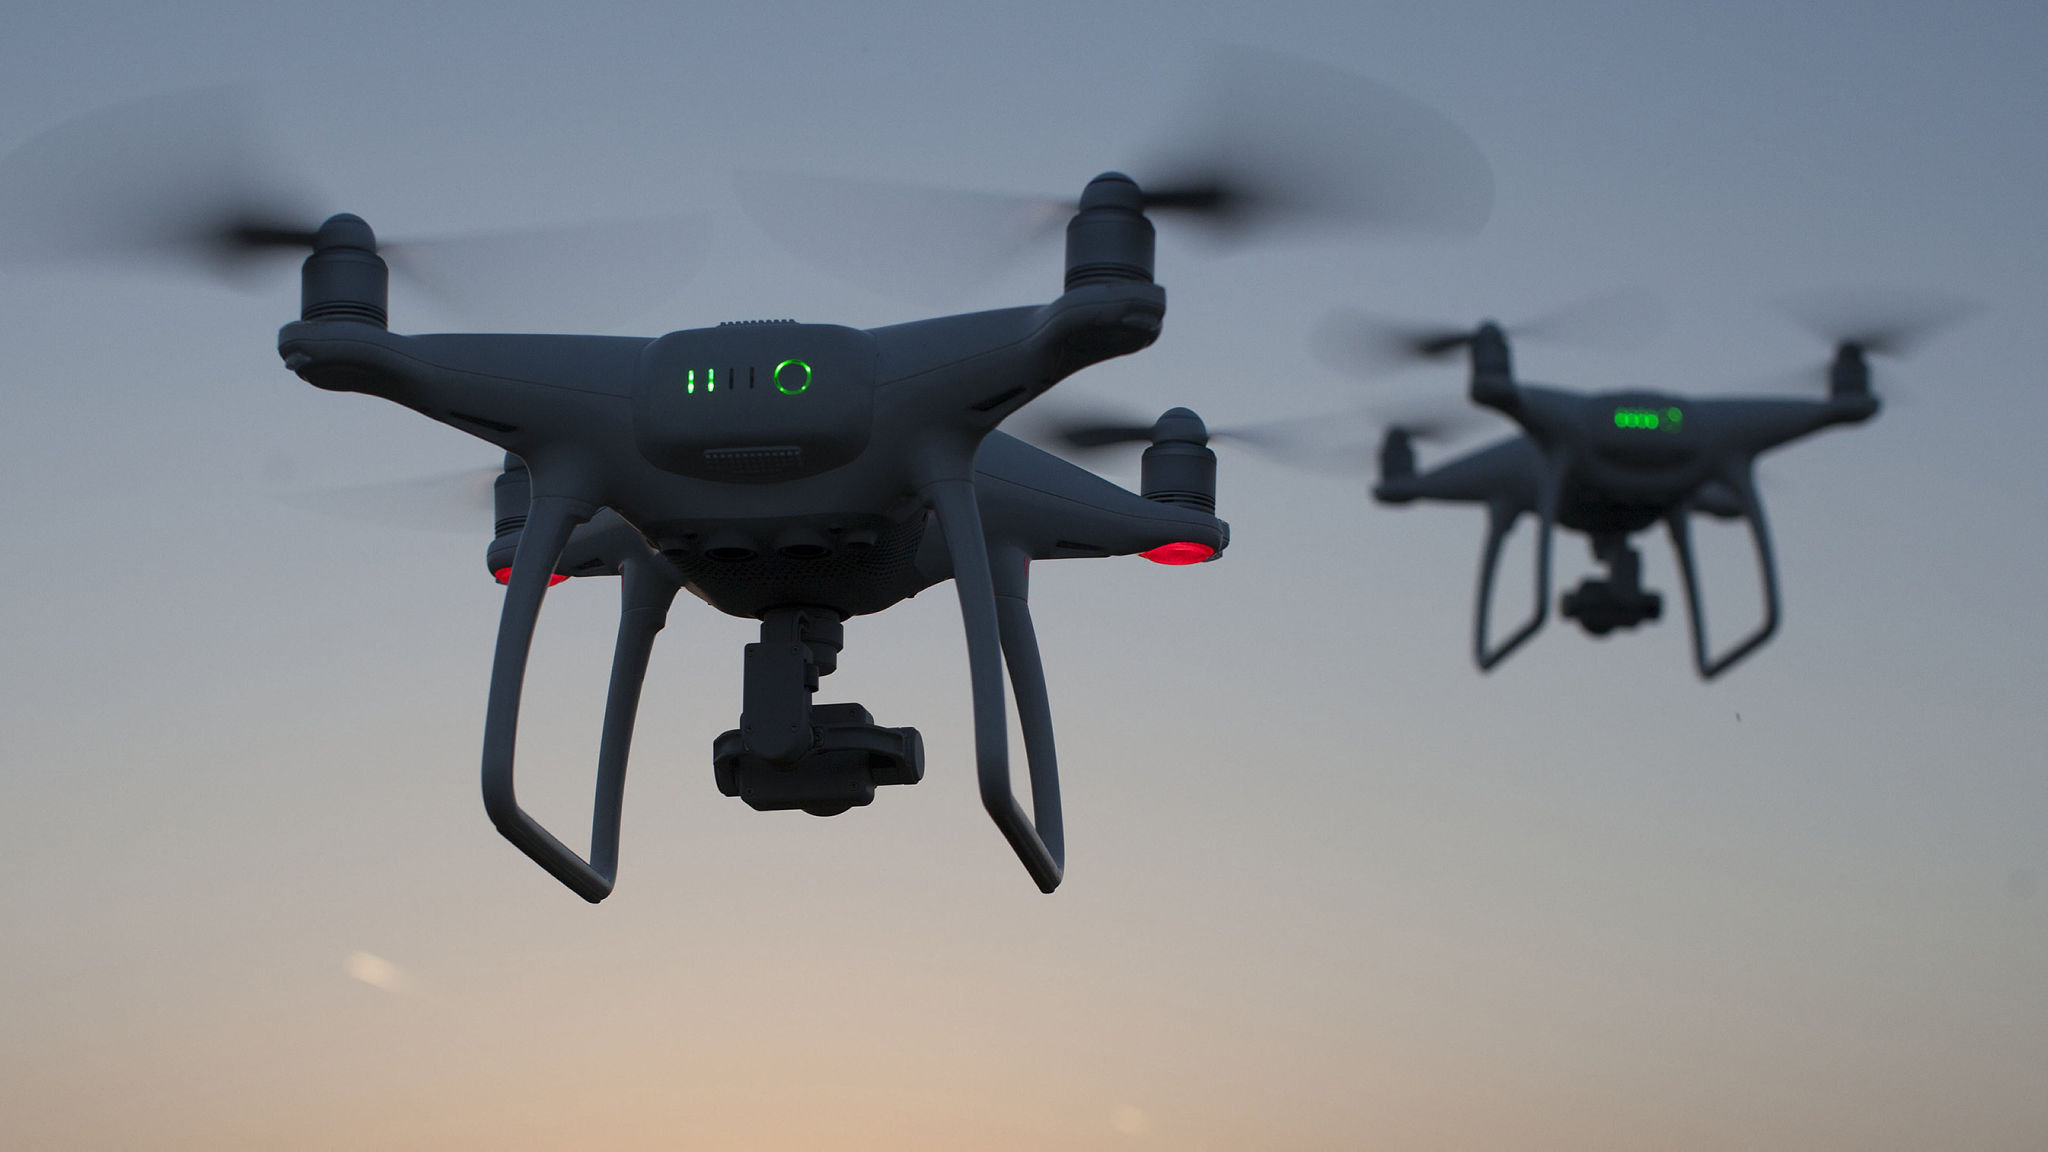 Drone risk to aircraft is rising sharply, UK safety experts warn